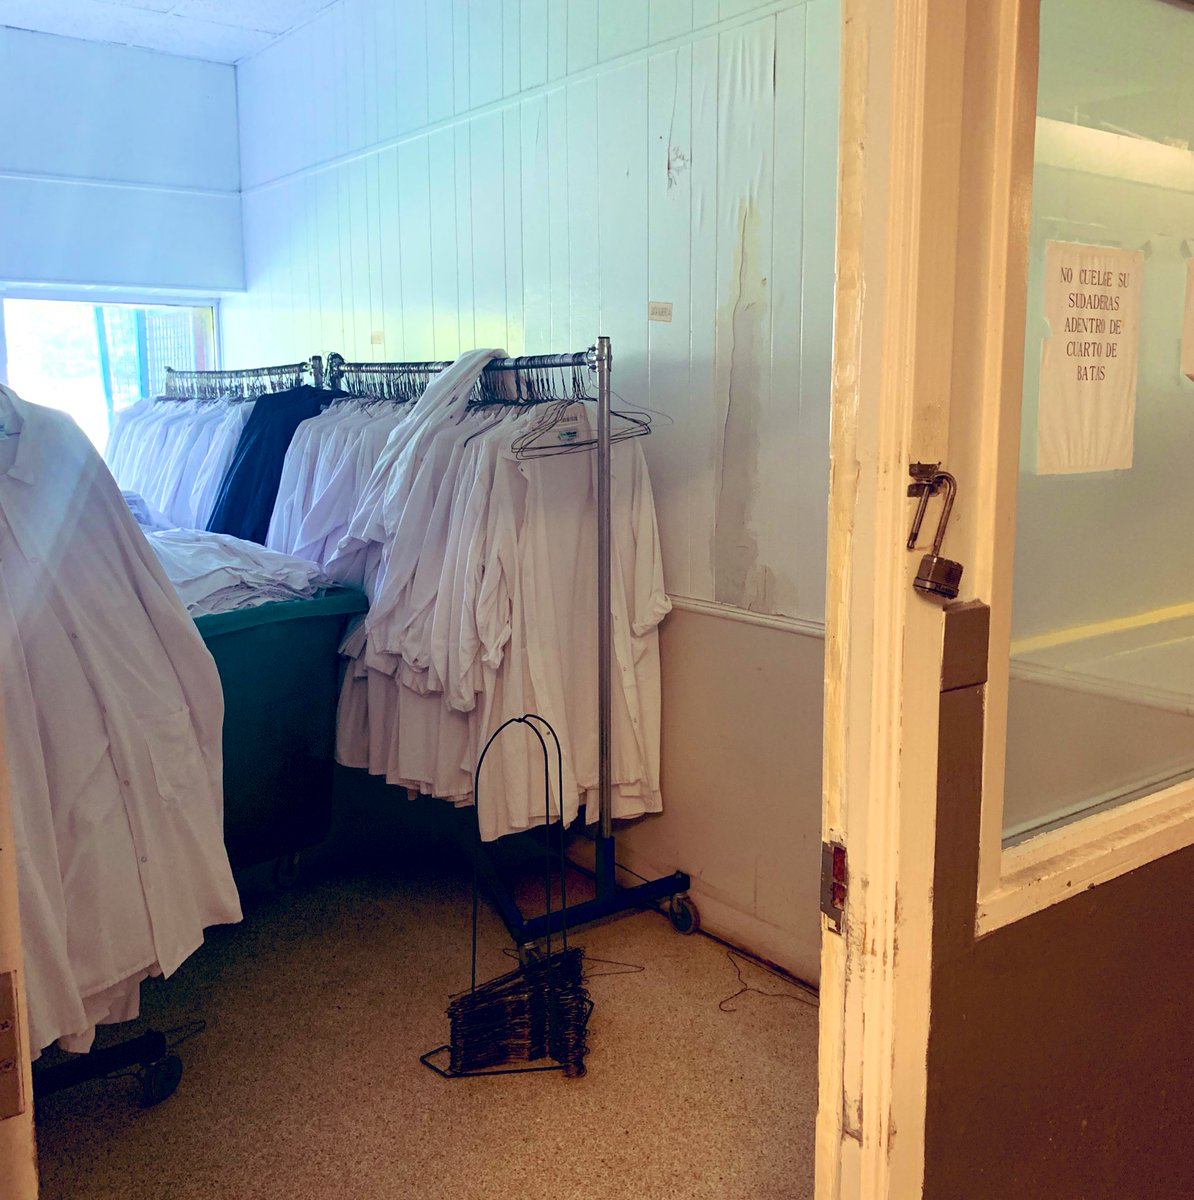 Unused uniforms at the PH Food Inc. meatpacking plant -only a handful of workers came to work today -most still detained, others too afraid. Nearby, Koch Foods announced the company will host a job fair next week after workers at its 2 plants were detained. #ICEraids #ICEraidsMS <br>http://pic.twitter.com/VYwVUqd9hN